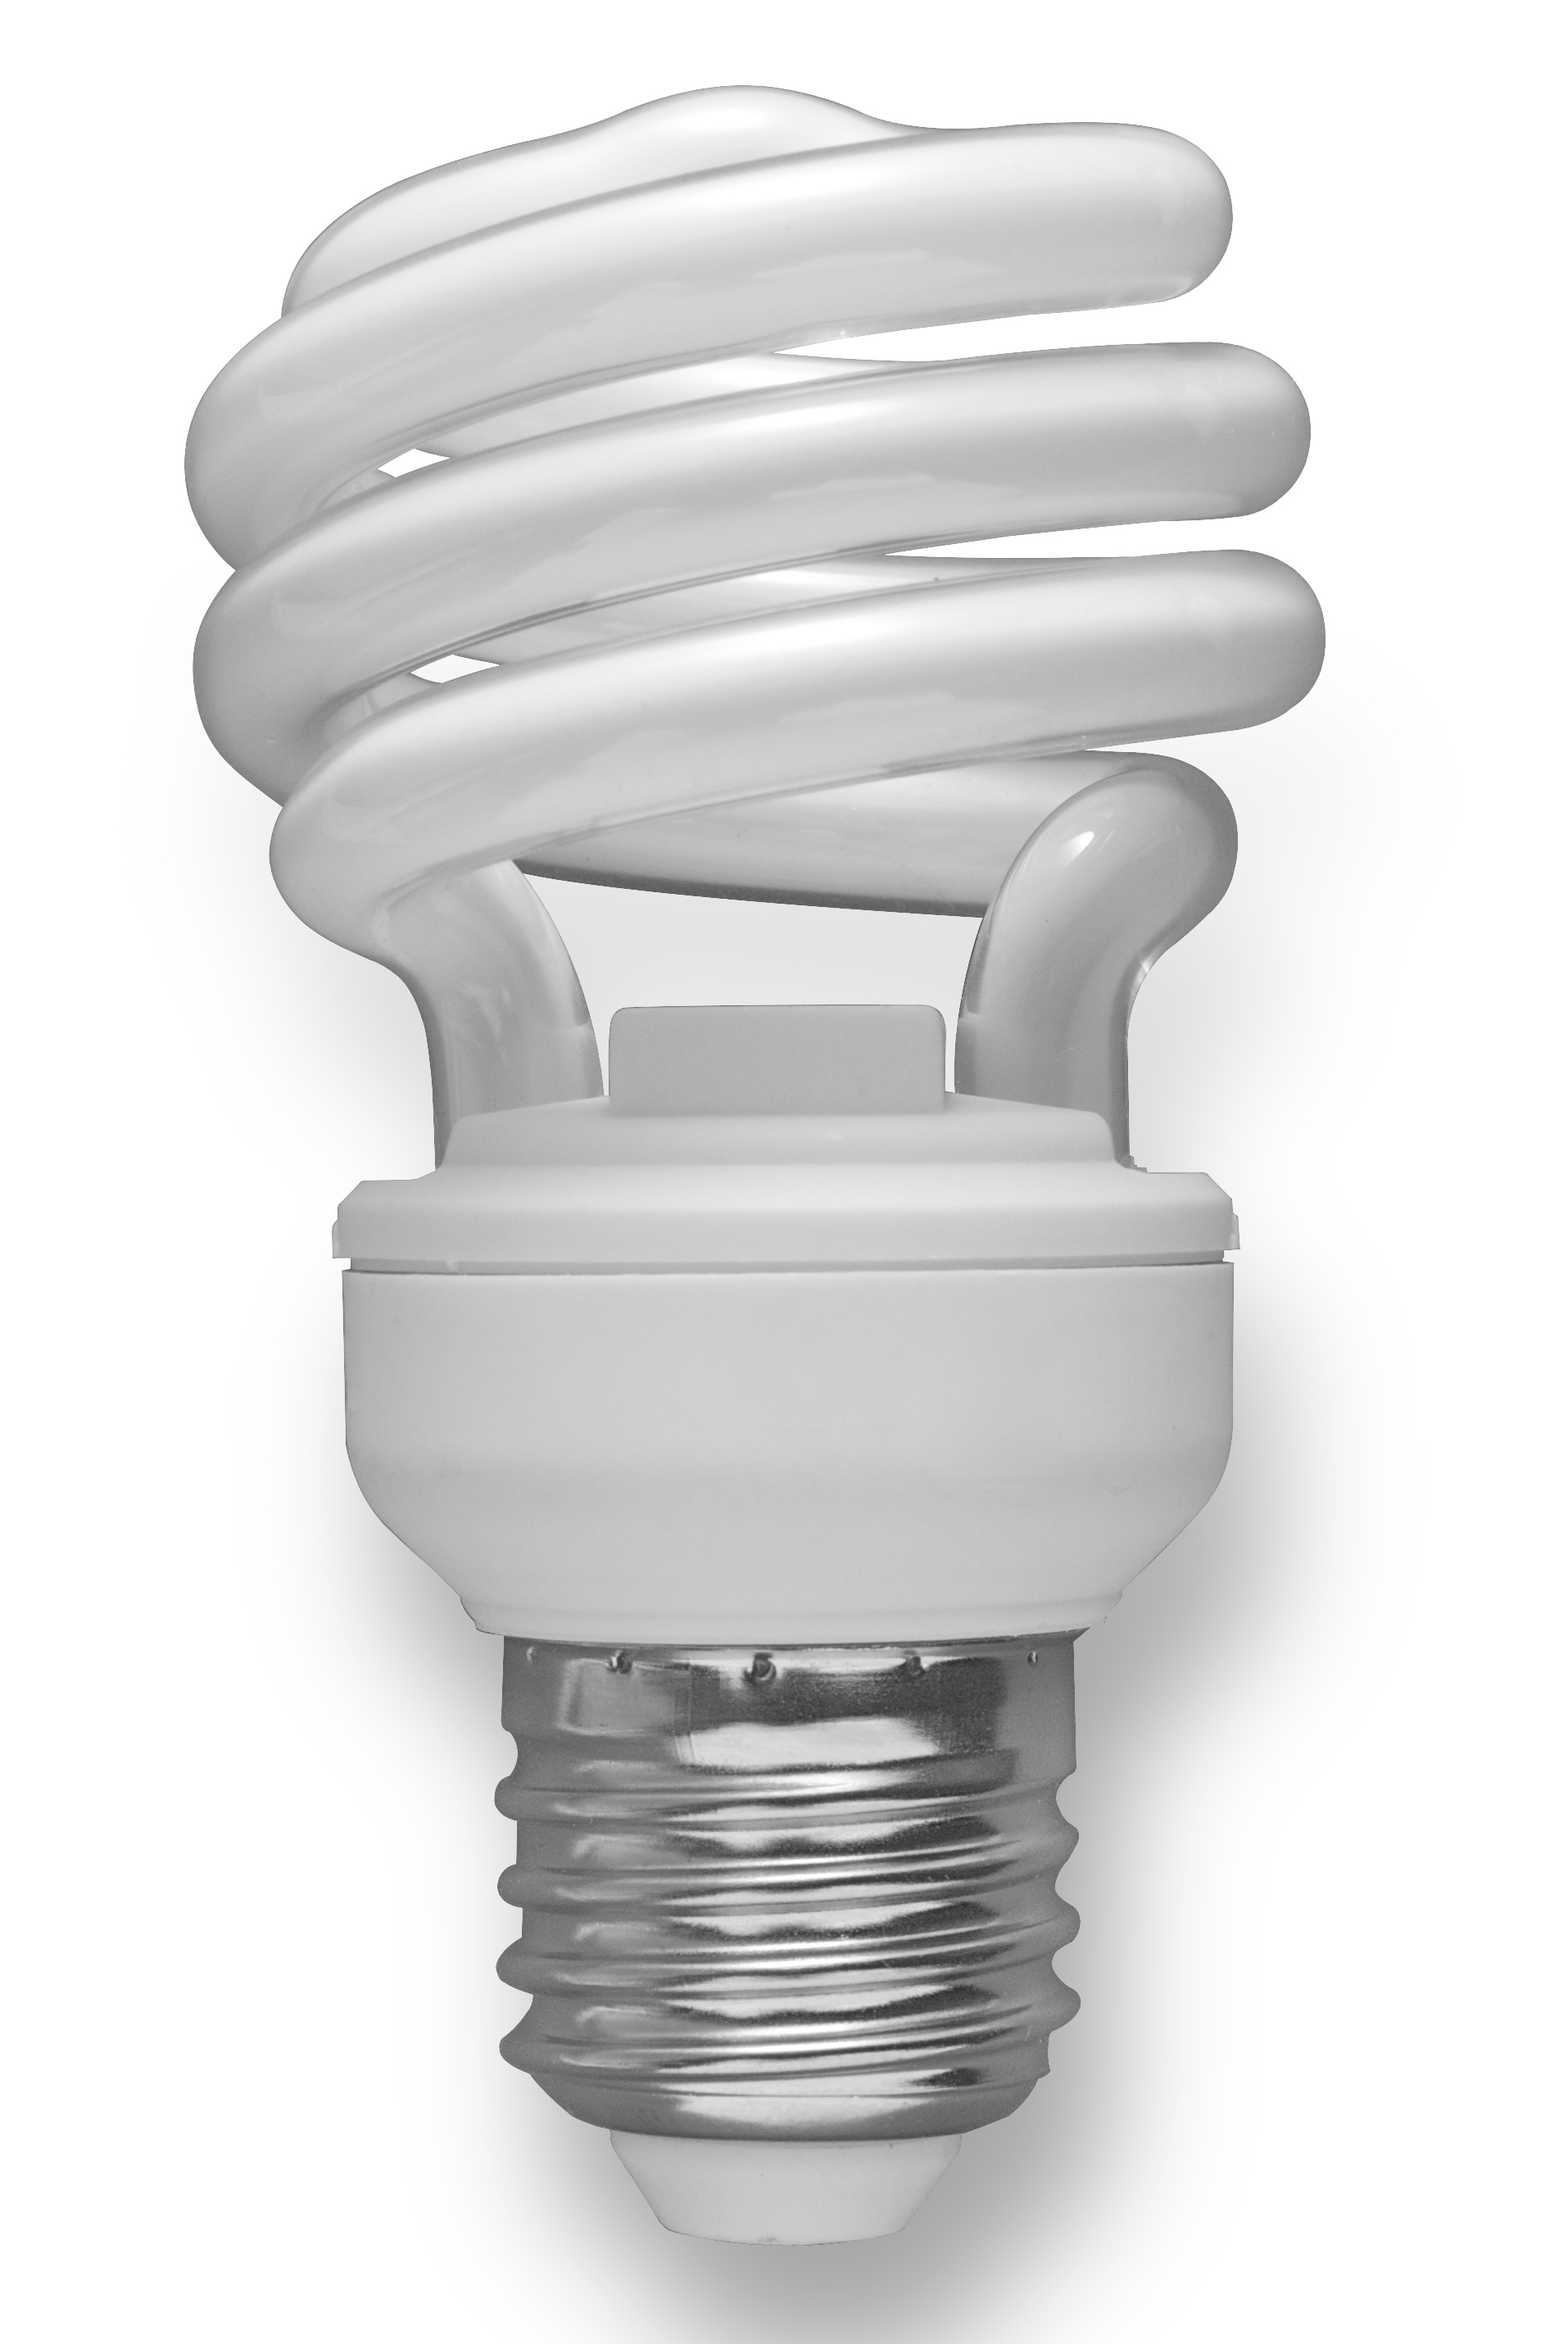 File 06 spiral cfl bulb 2010 03 08 white back jpg wikimedia commons Efficient light bulbs